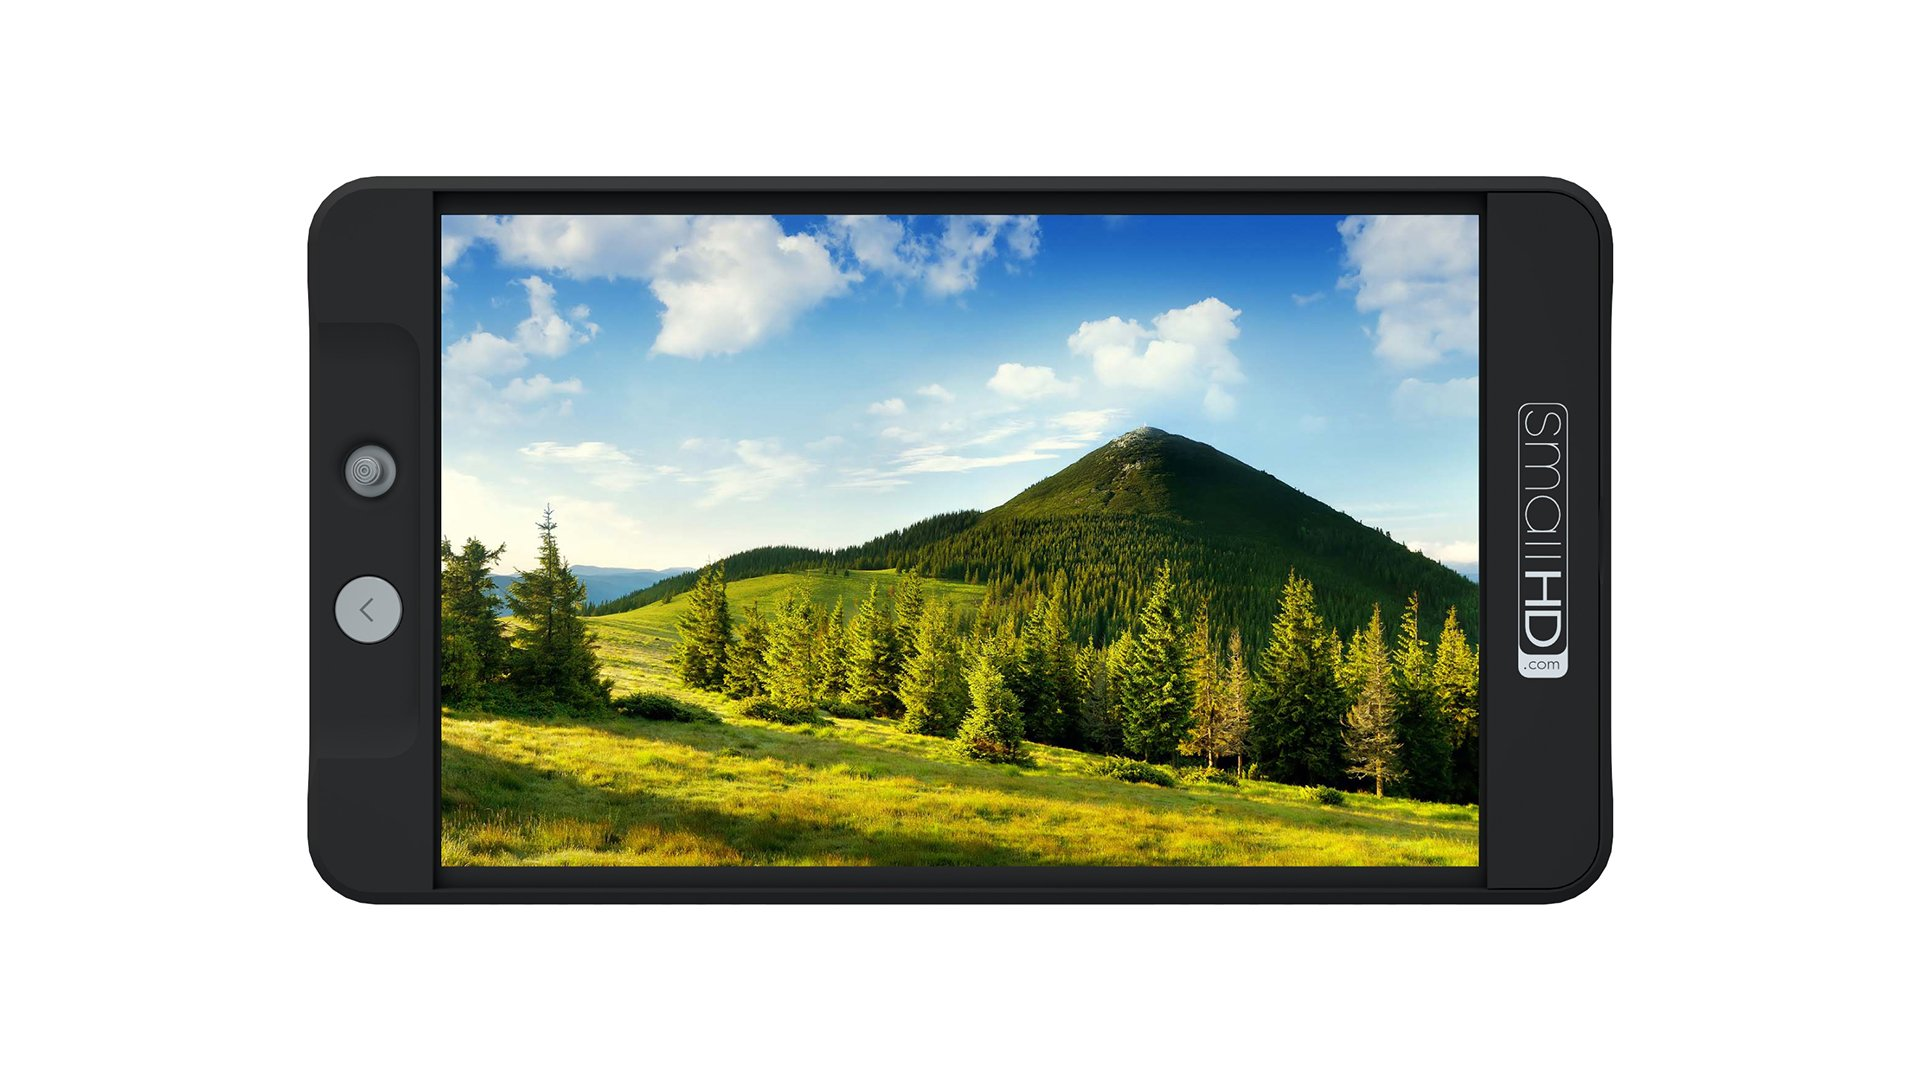 702 Bright Full HD Field Monitor